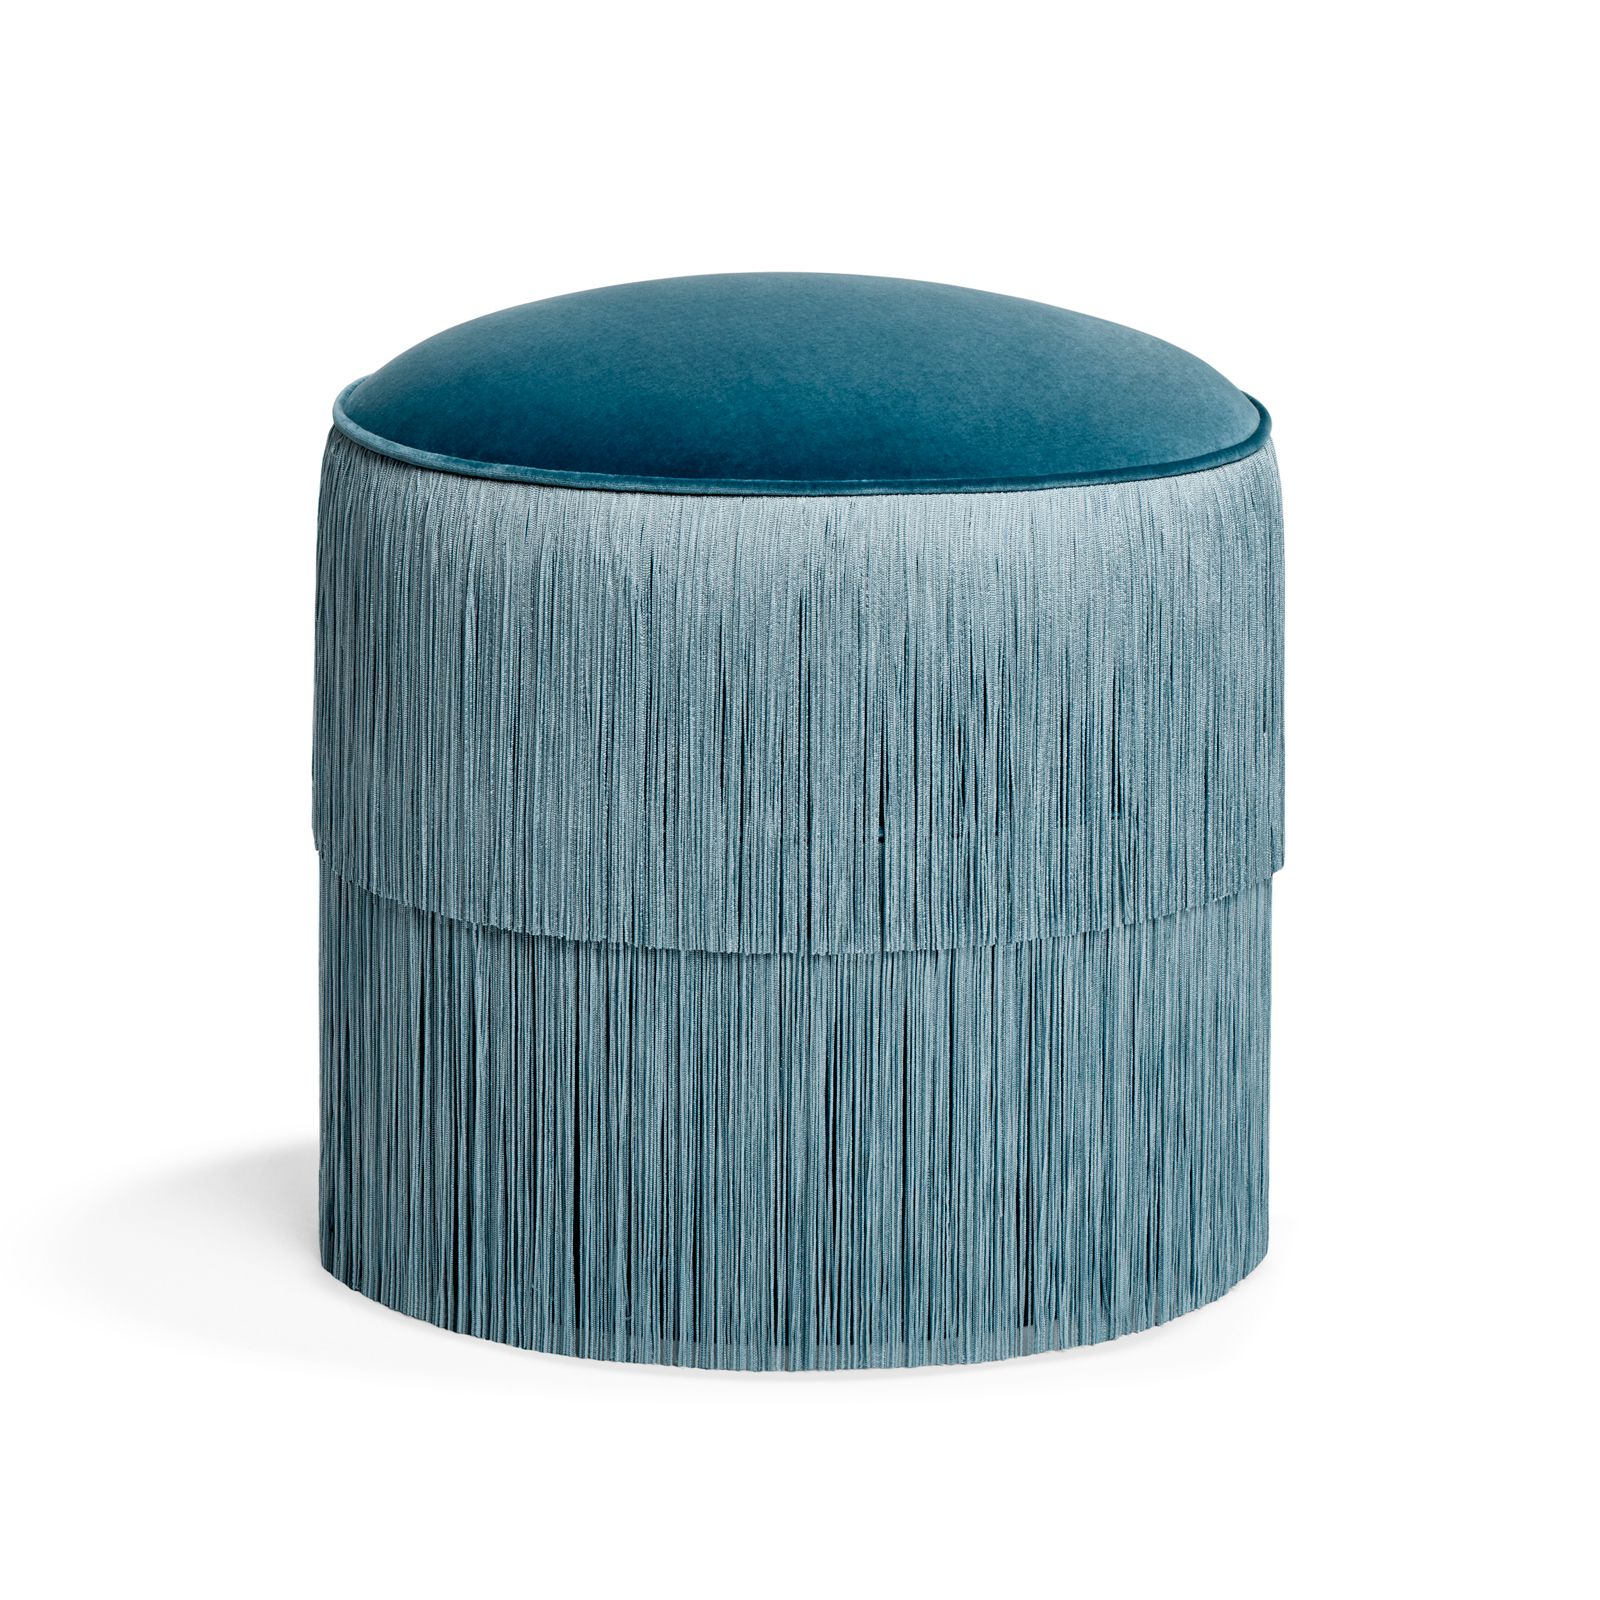 new product 3dbab 4017d Fringes Stool by Munna Design | CHAIRS + SEATING | Furniture ...